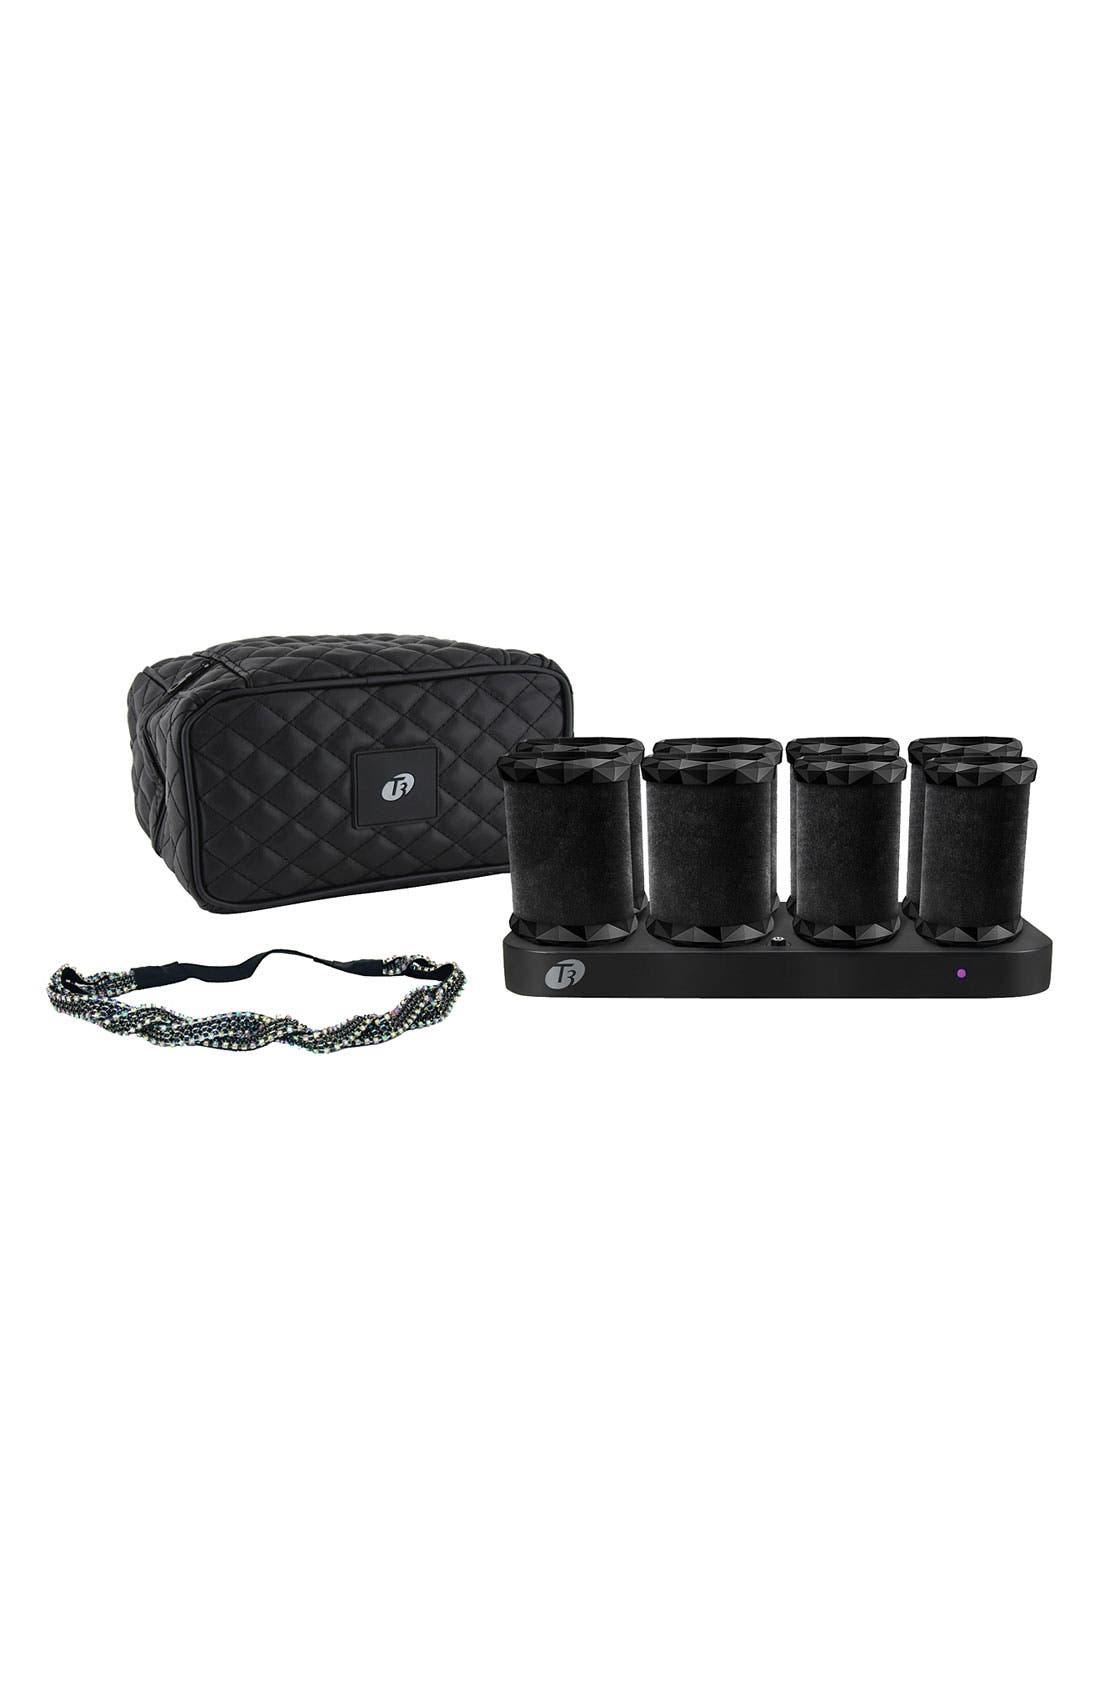 Alternate Image 1 Selected - T3 'Hollywood Nights' Set (Nordstrom Exclusive) ($127 Value)